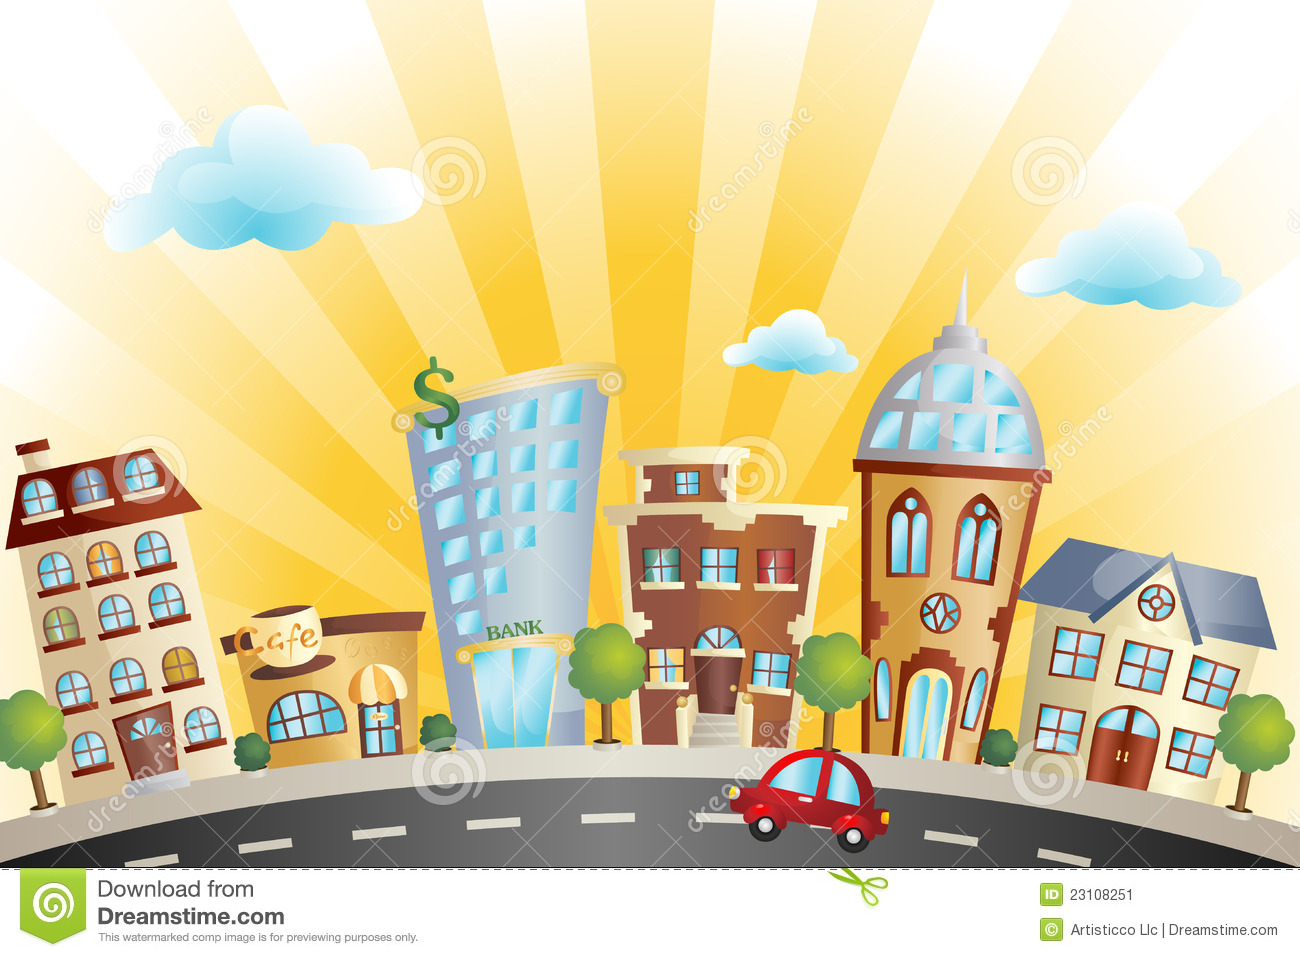 vector illustration of colorful cartoon cityscape.